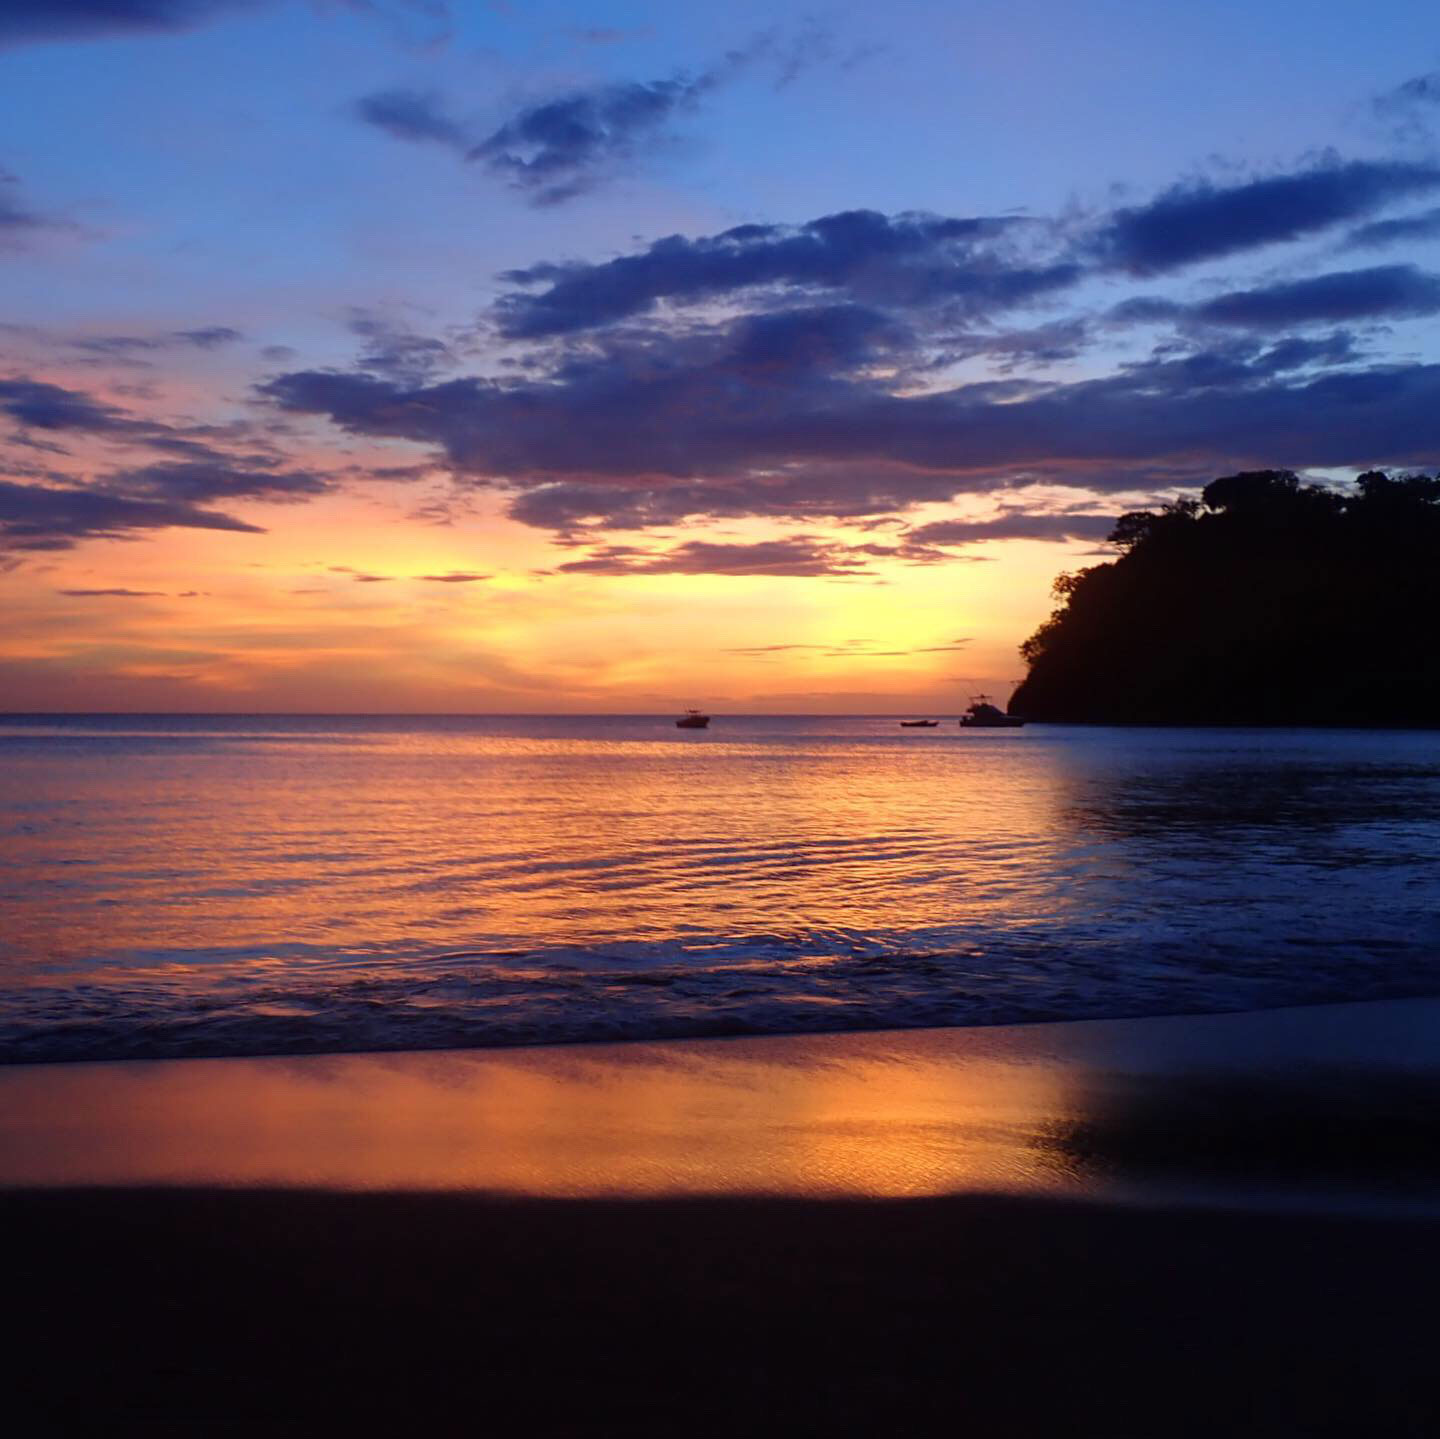 Guanacaste Costa Rica sunset.jpg